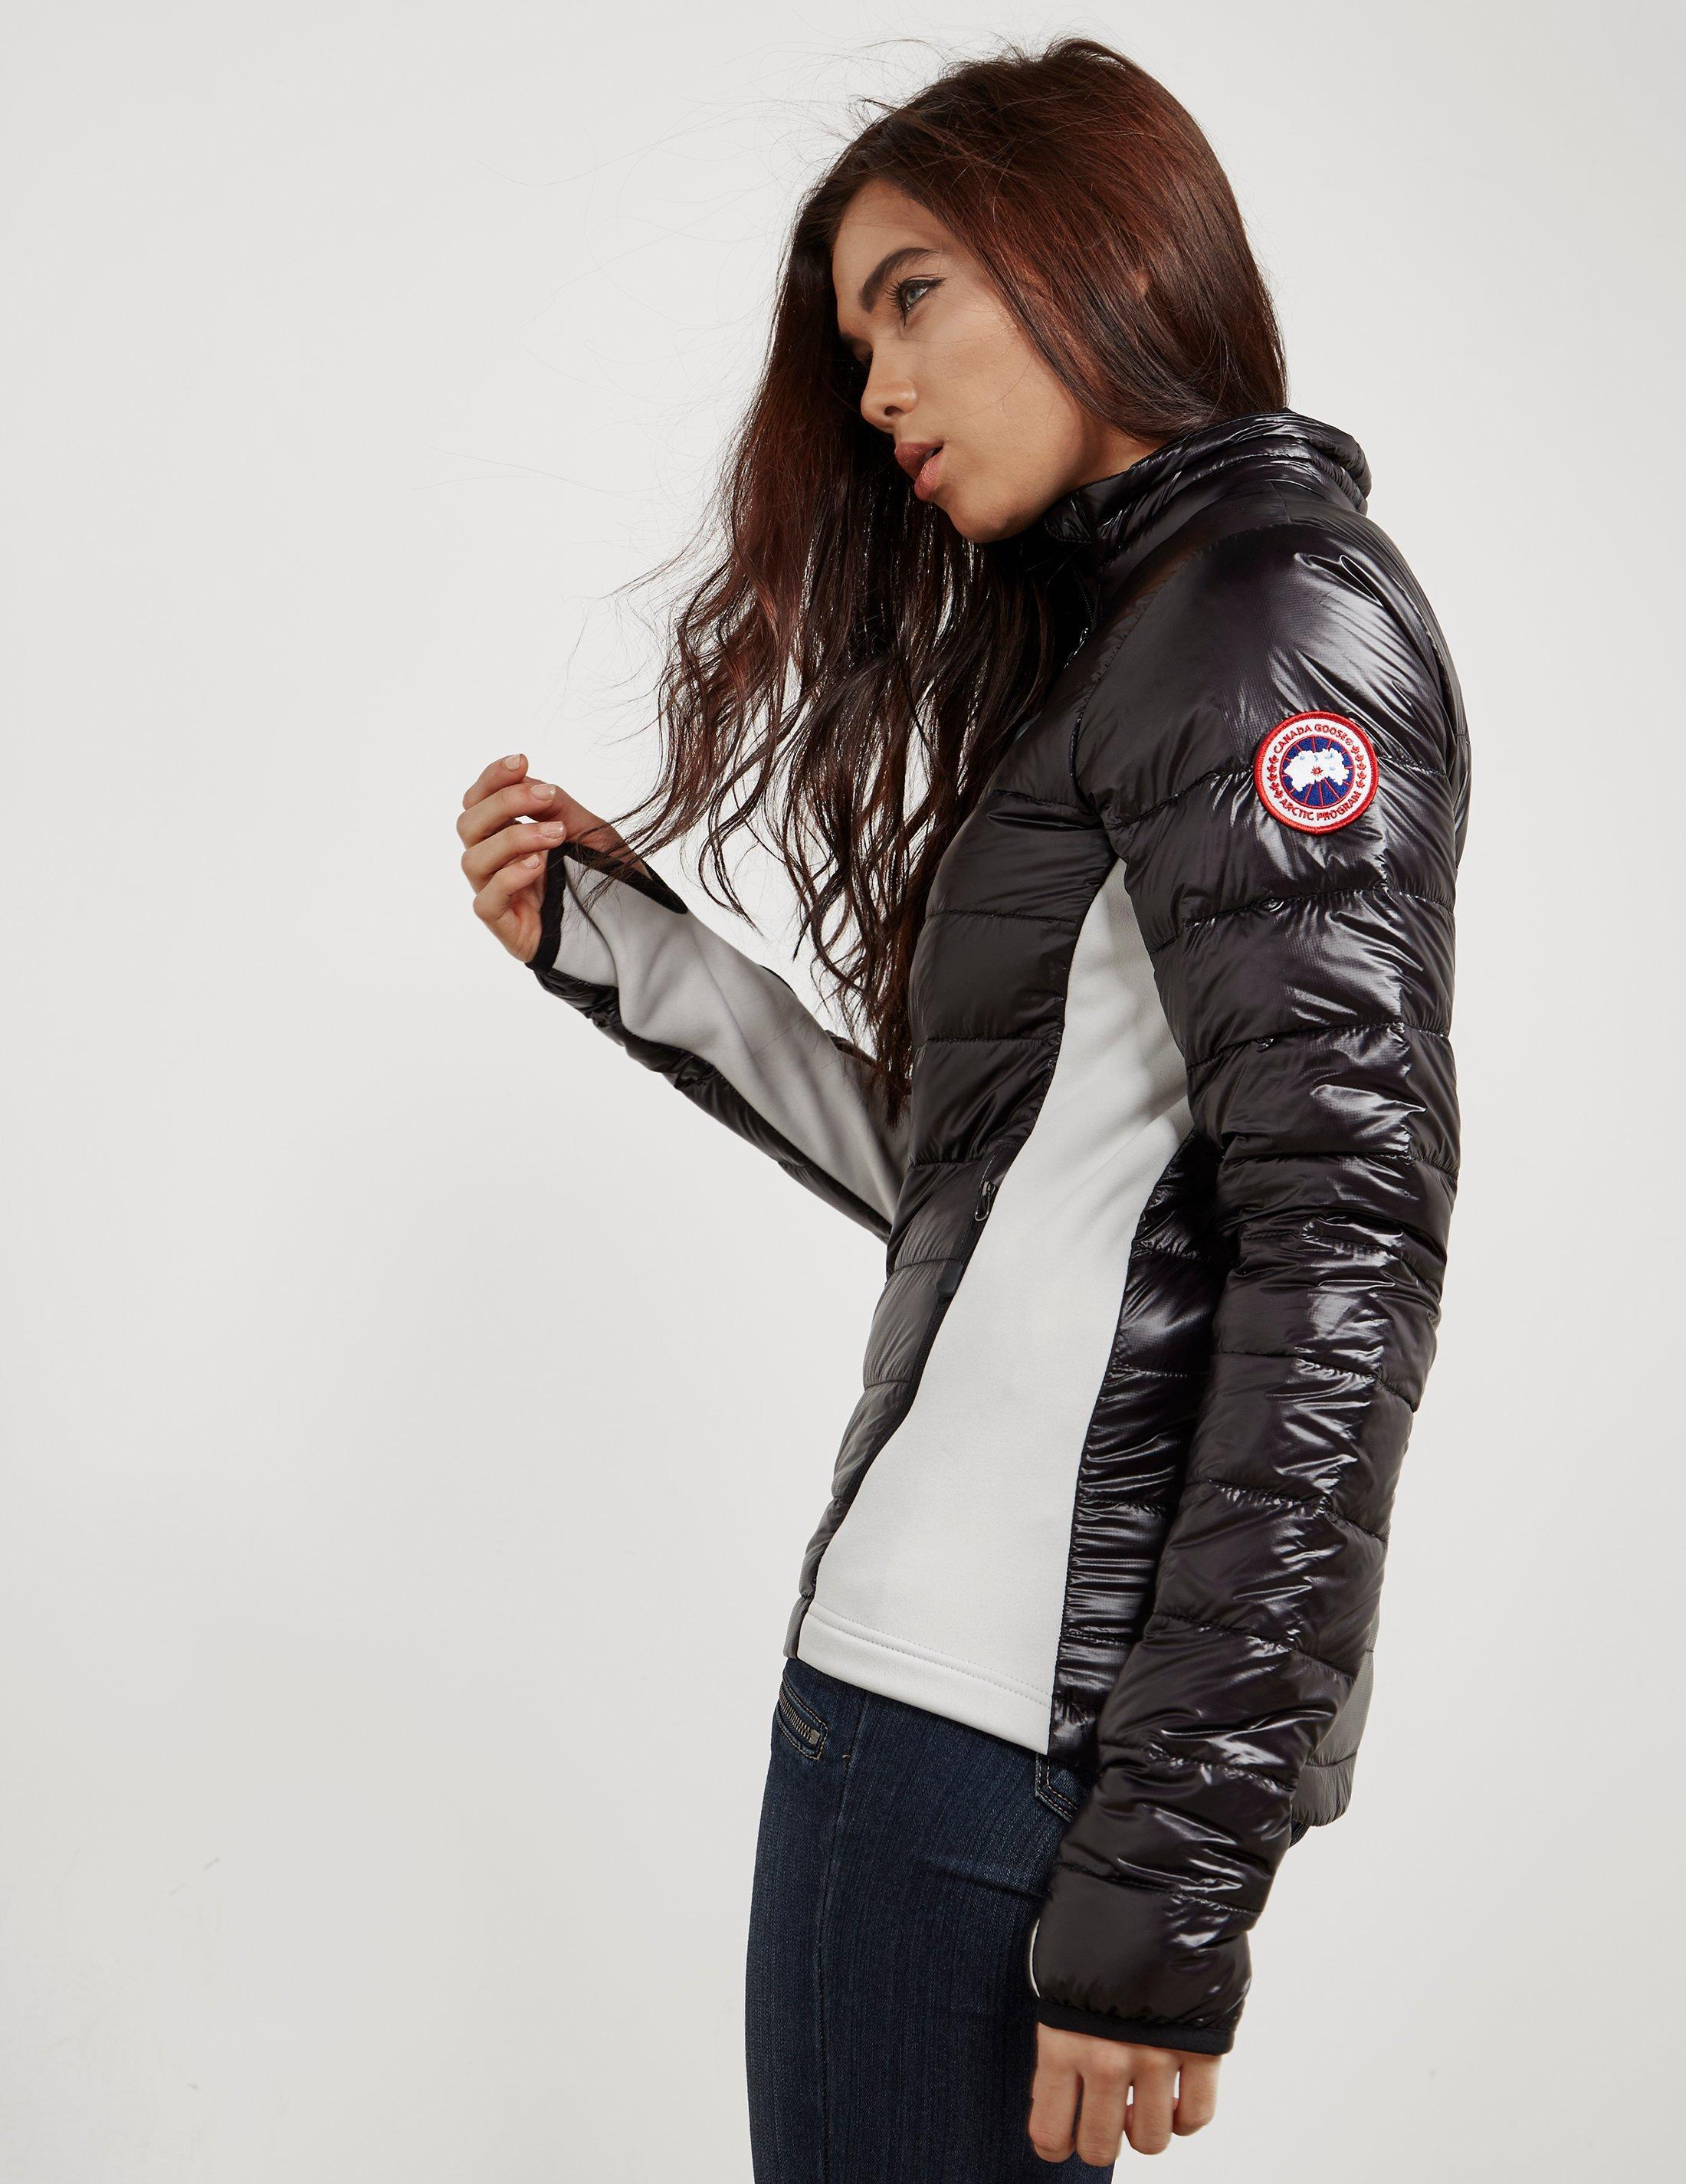 Lyst - Canada Goose Hybridge Lite Jacket in Black - photo#18